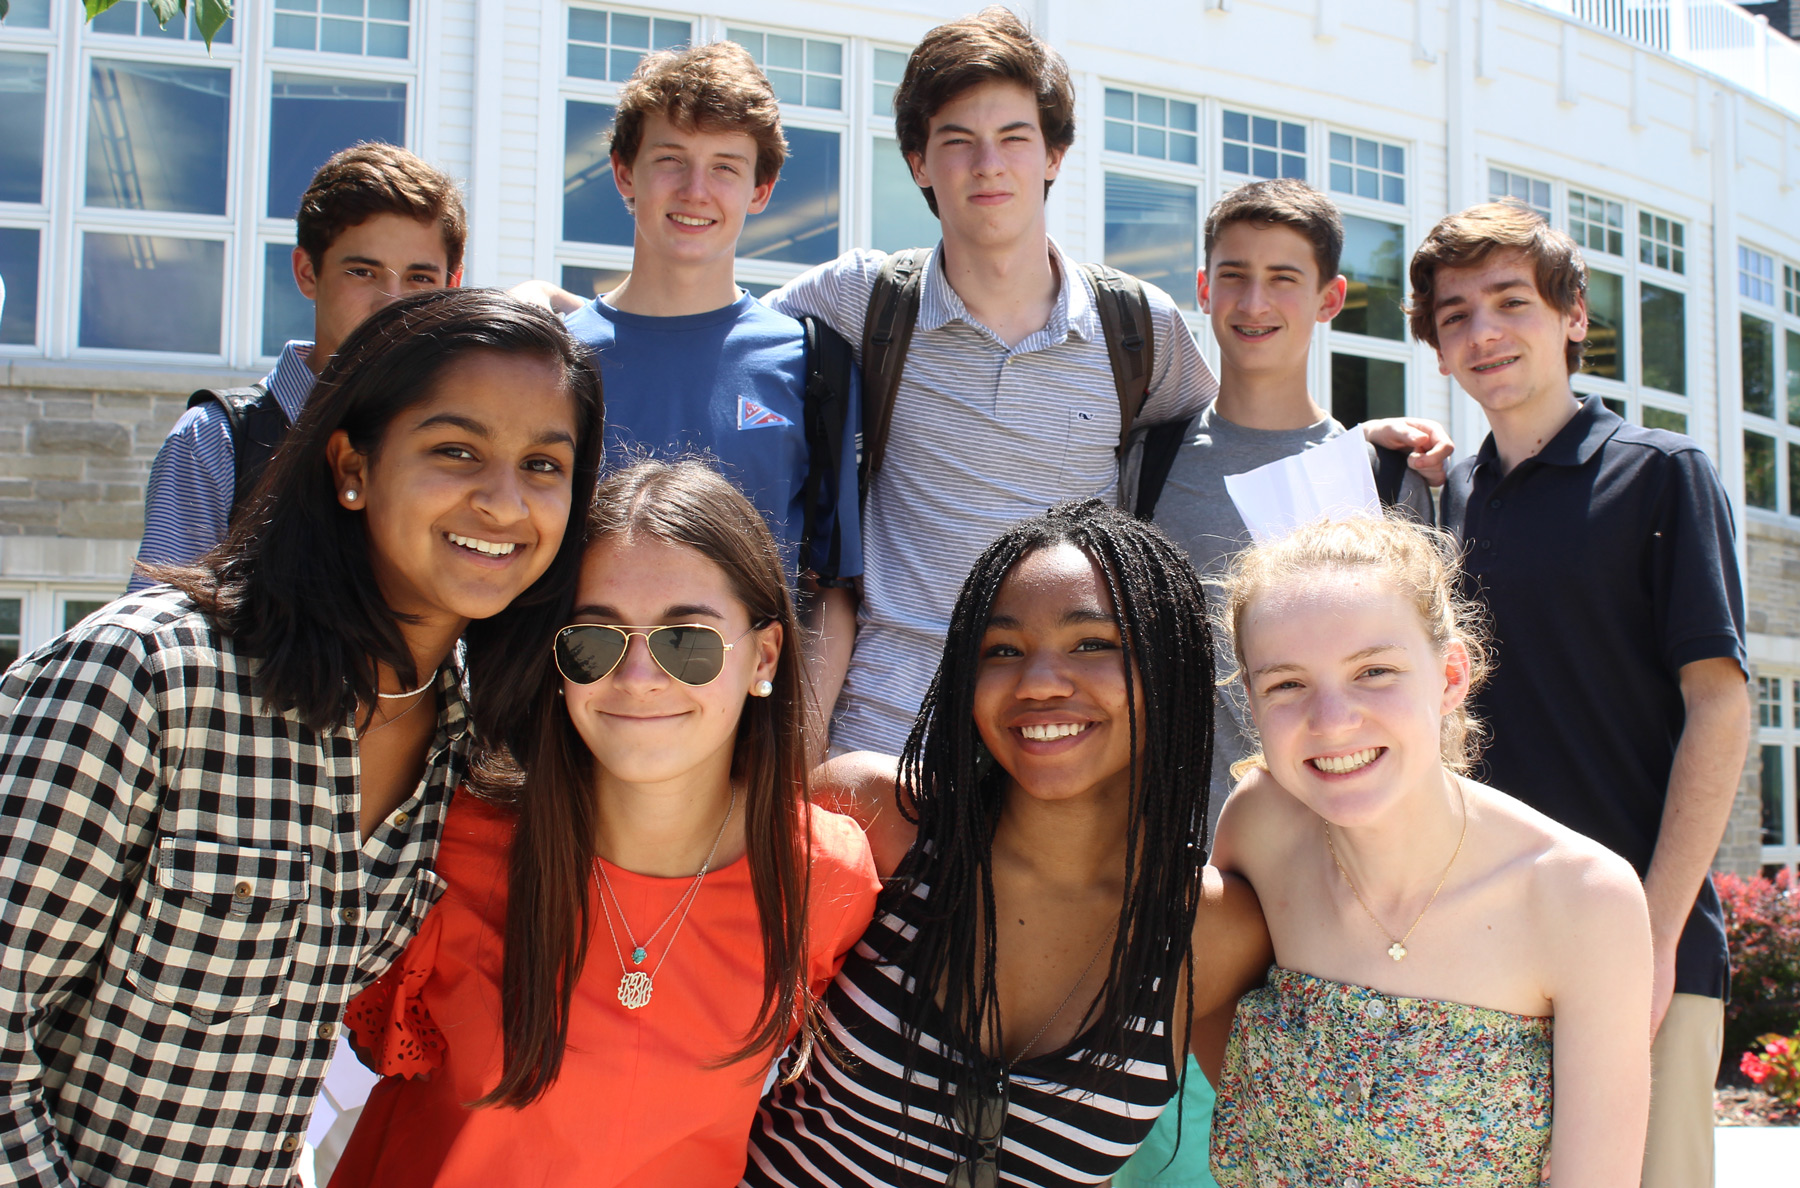 Several students standing outside posing for the camera